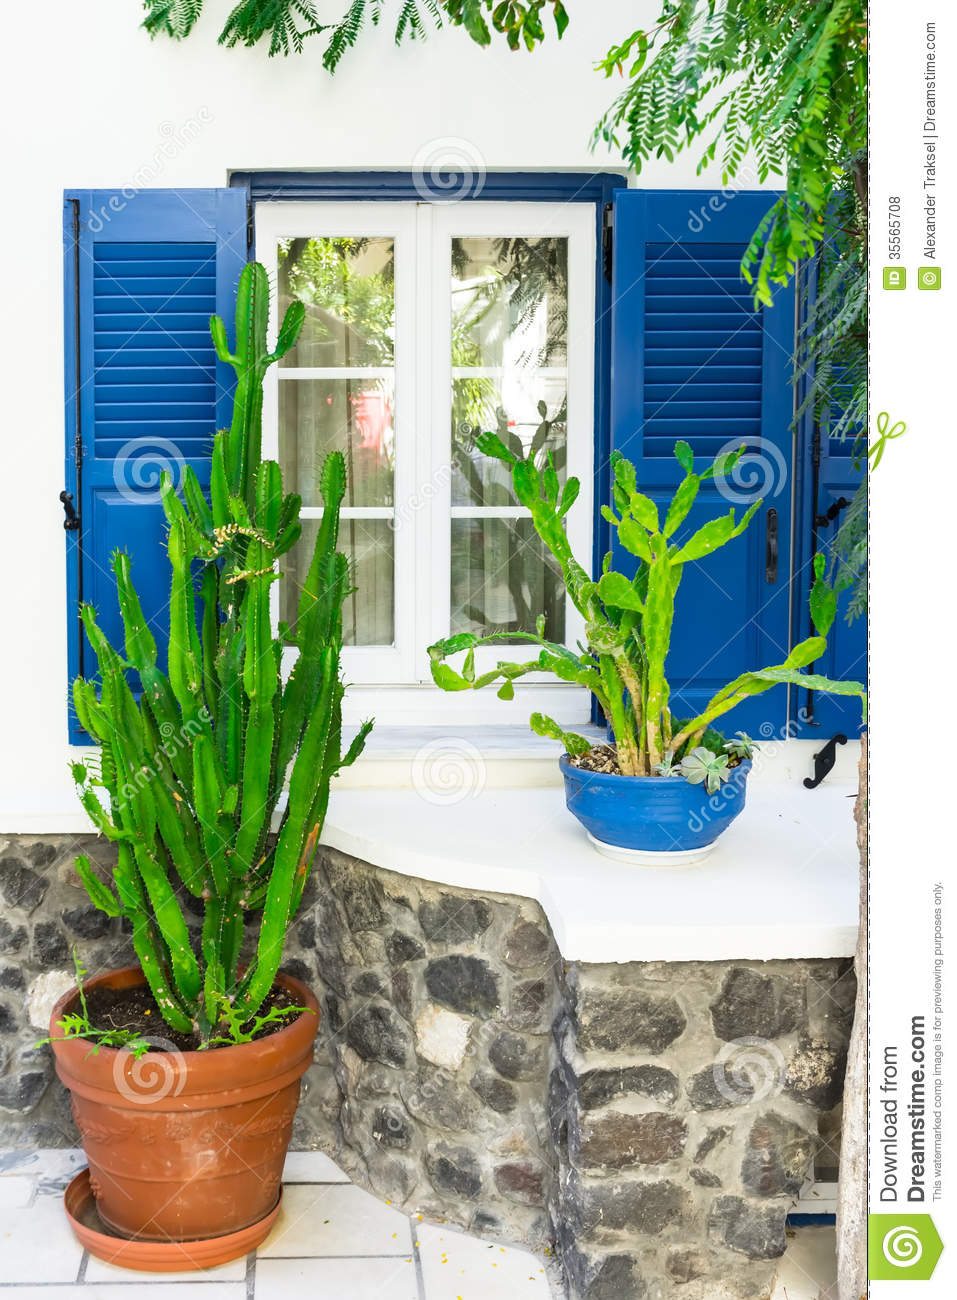 Facade Of The House With Plants Santorini Greece Royalty Free Stock